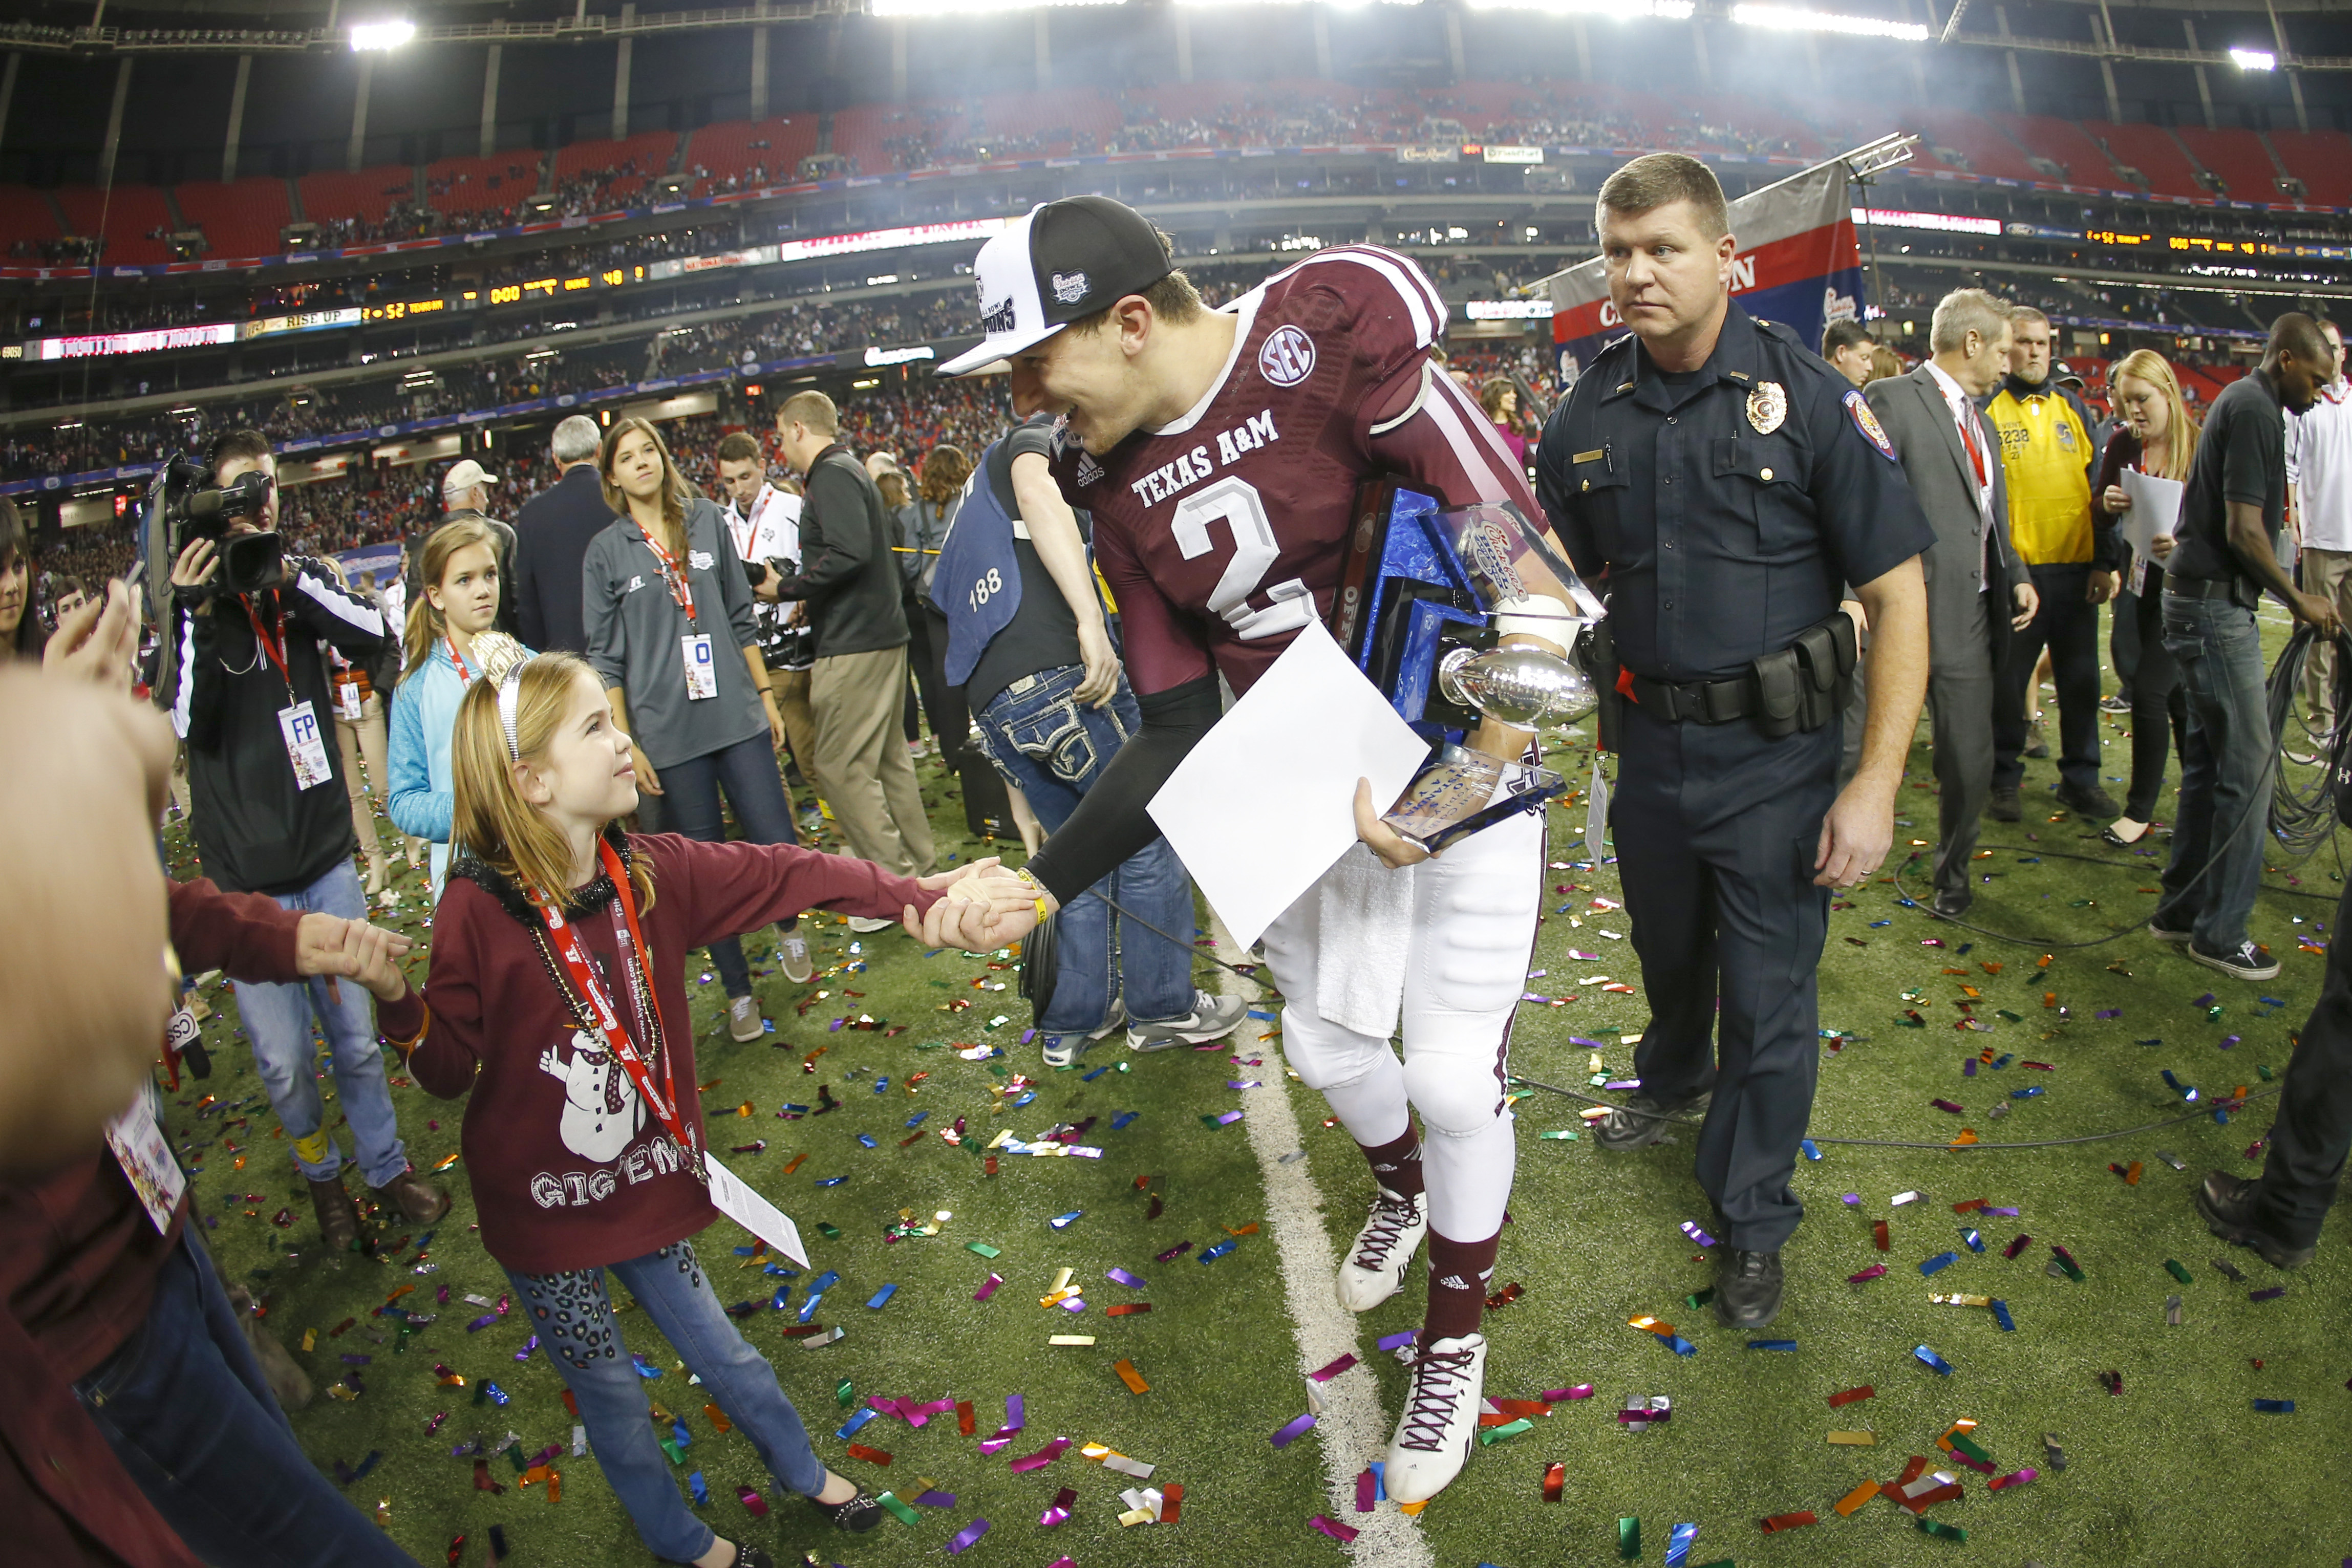 Texas A&M Aggies quarterback Johnny Manziel (2) greets a young fan after defeating the Duke Blue Devils during the 2013 Chick-fil-A Bowl at the Georgia Dome. Texas A&M won 52-48. (Paul Abell-USA TODAY Sports)